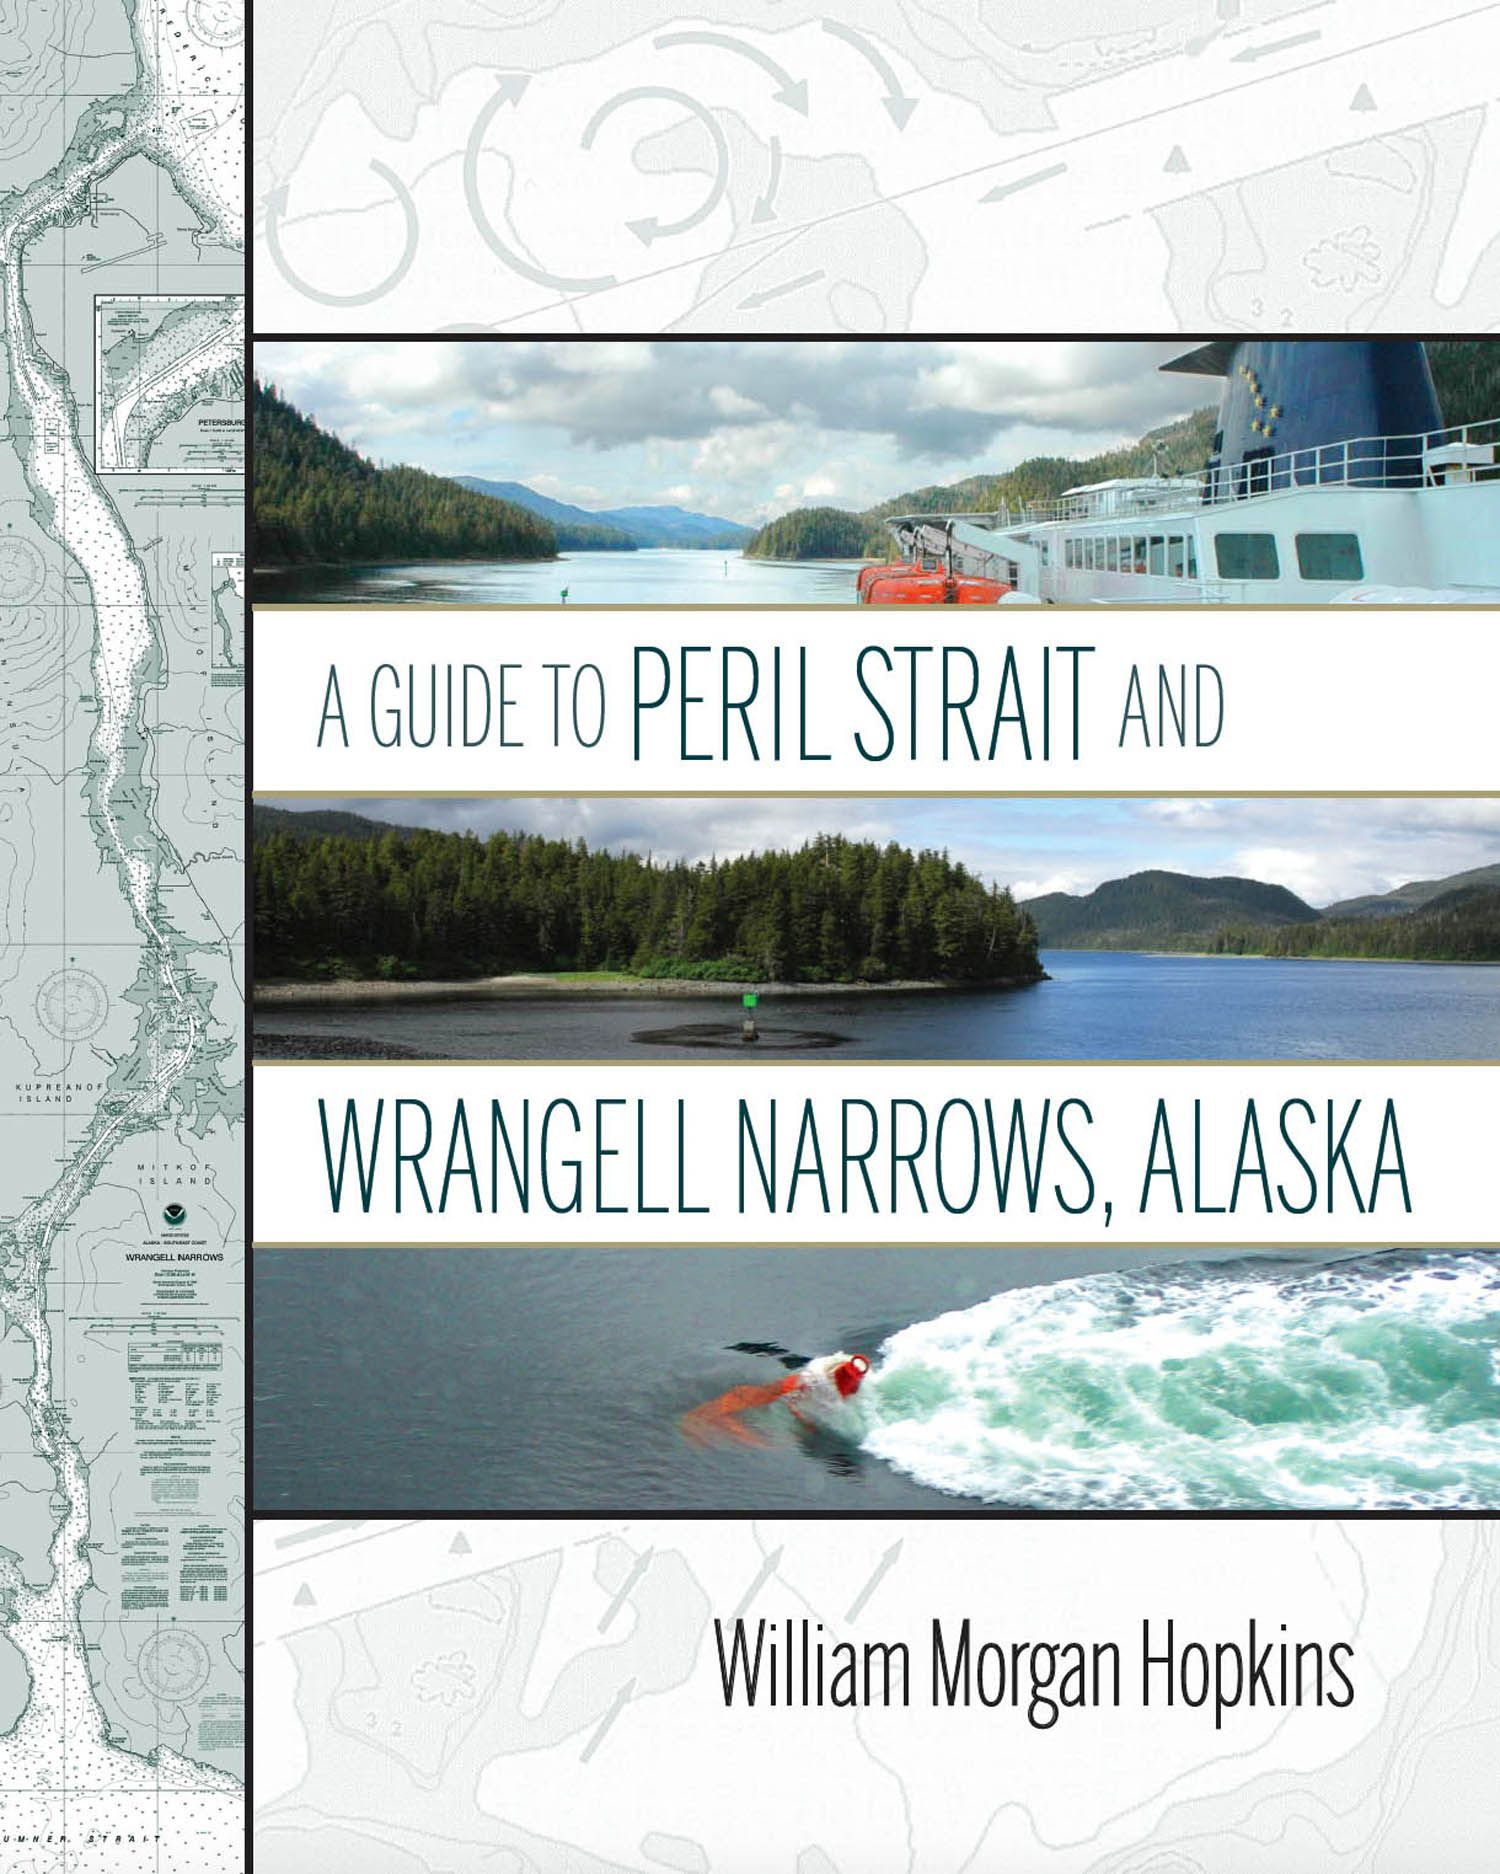 A Guide to Peril Strait and Wrangell Narrows, Alaska